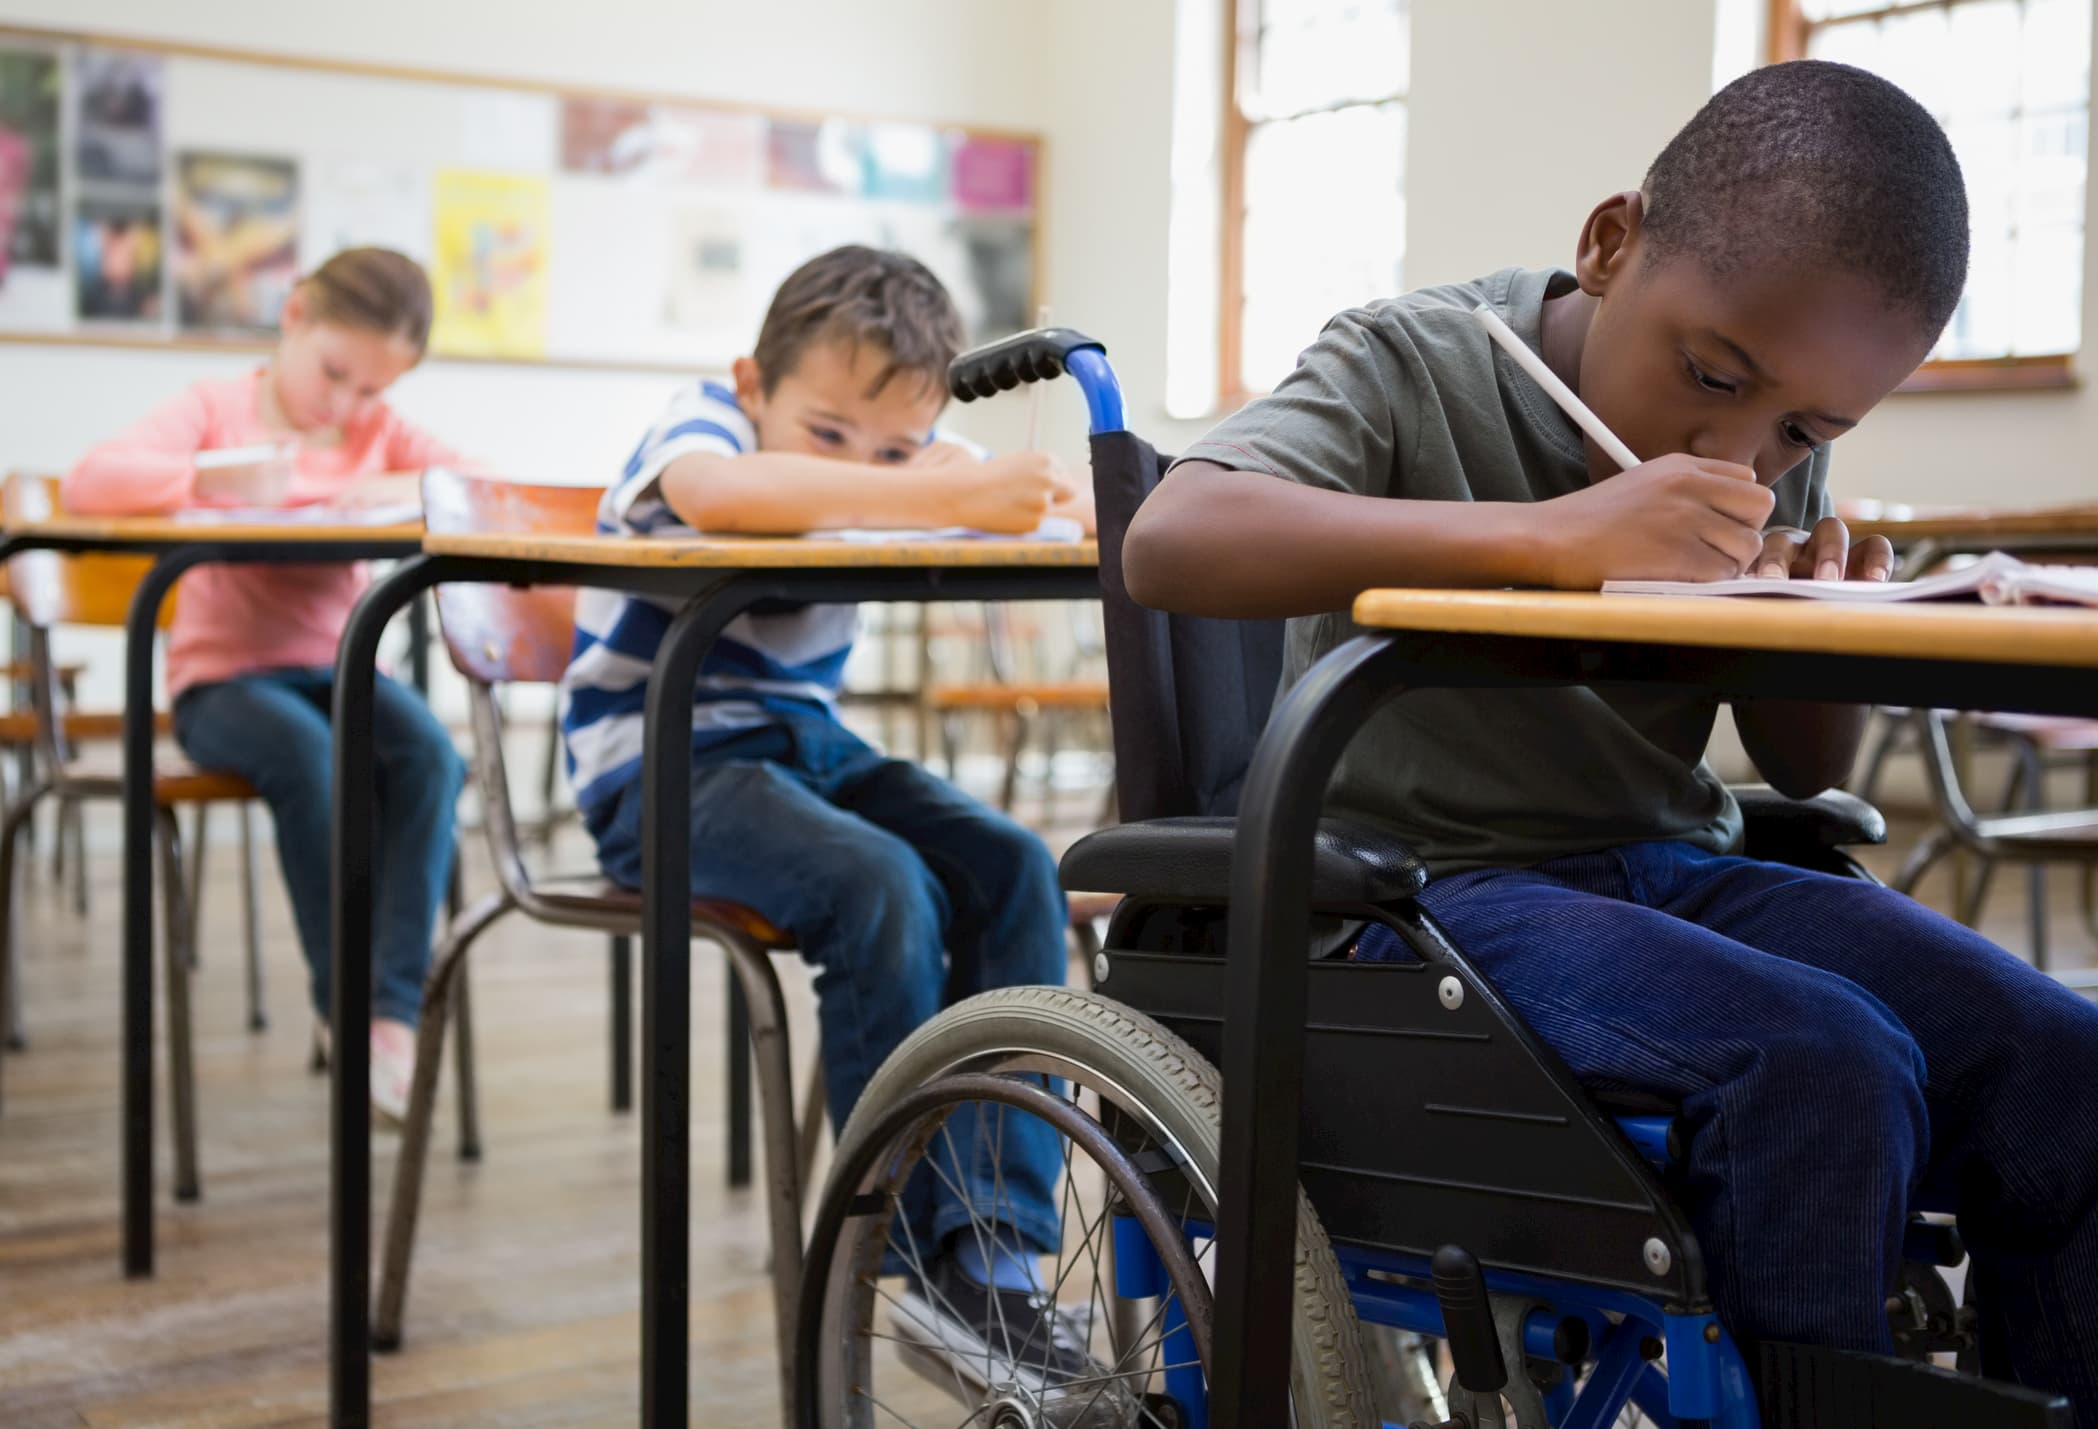 The International Day of Persons with Disabilities (IDPD) is annually observed on 3 December to promote the full and equal participation of persons with disabilities and to take action for the inclusion of persons with disabilities